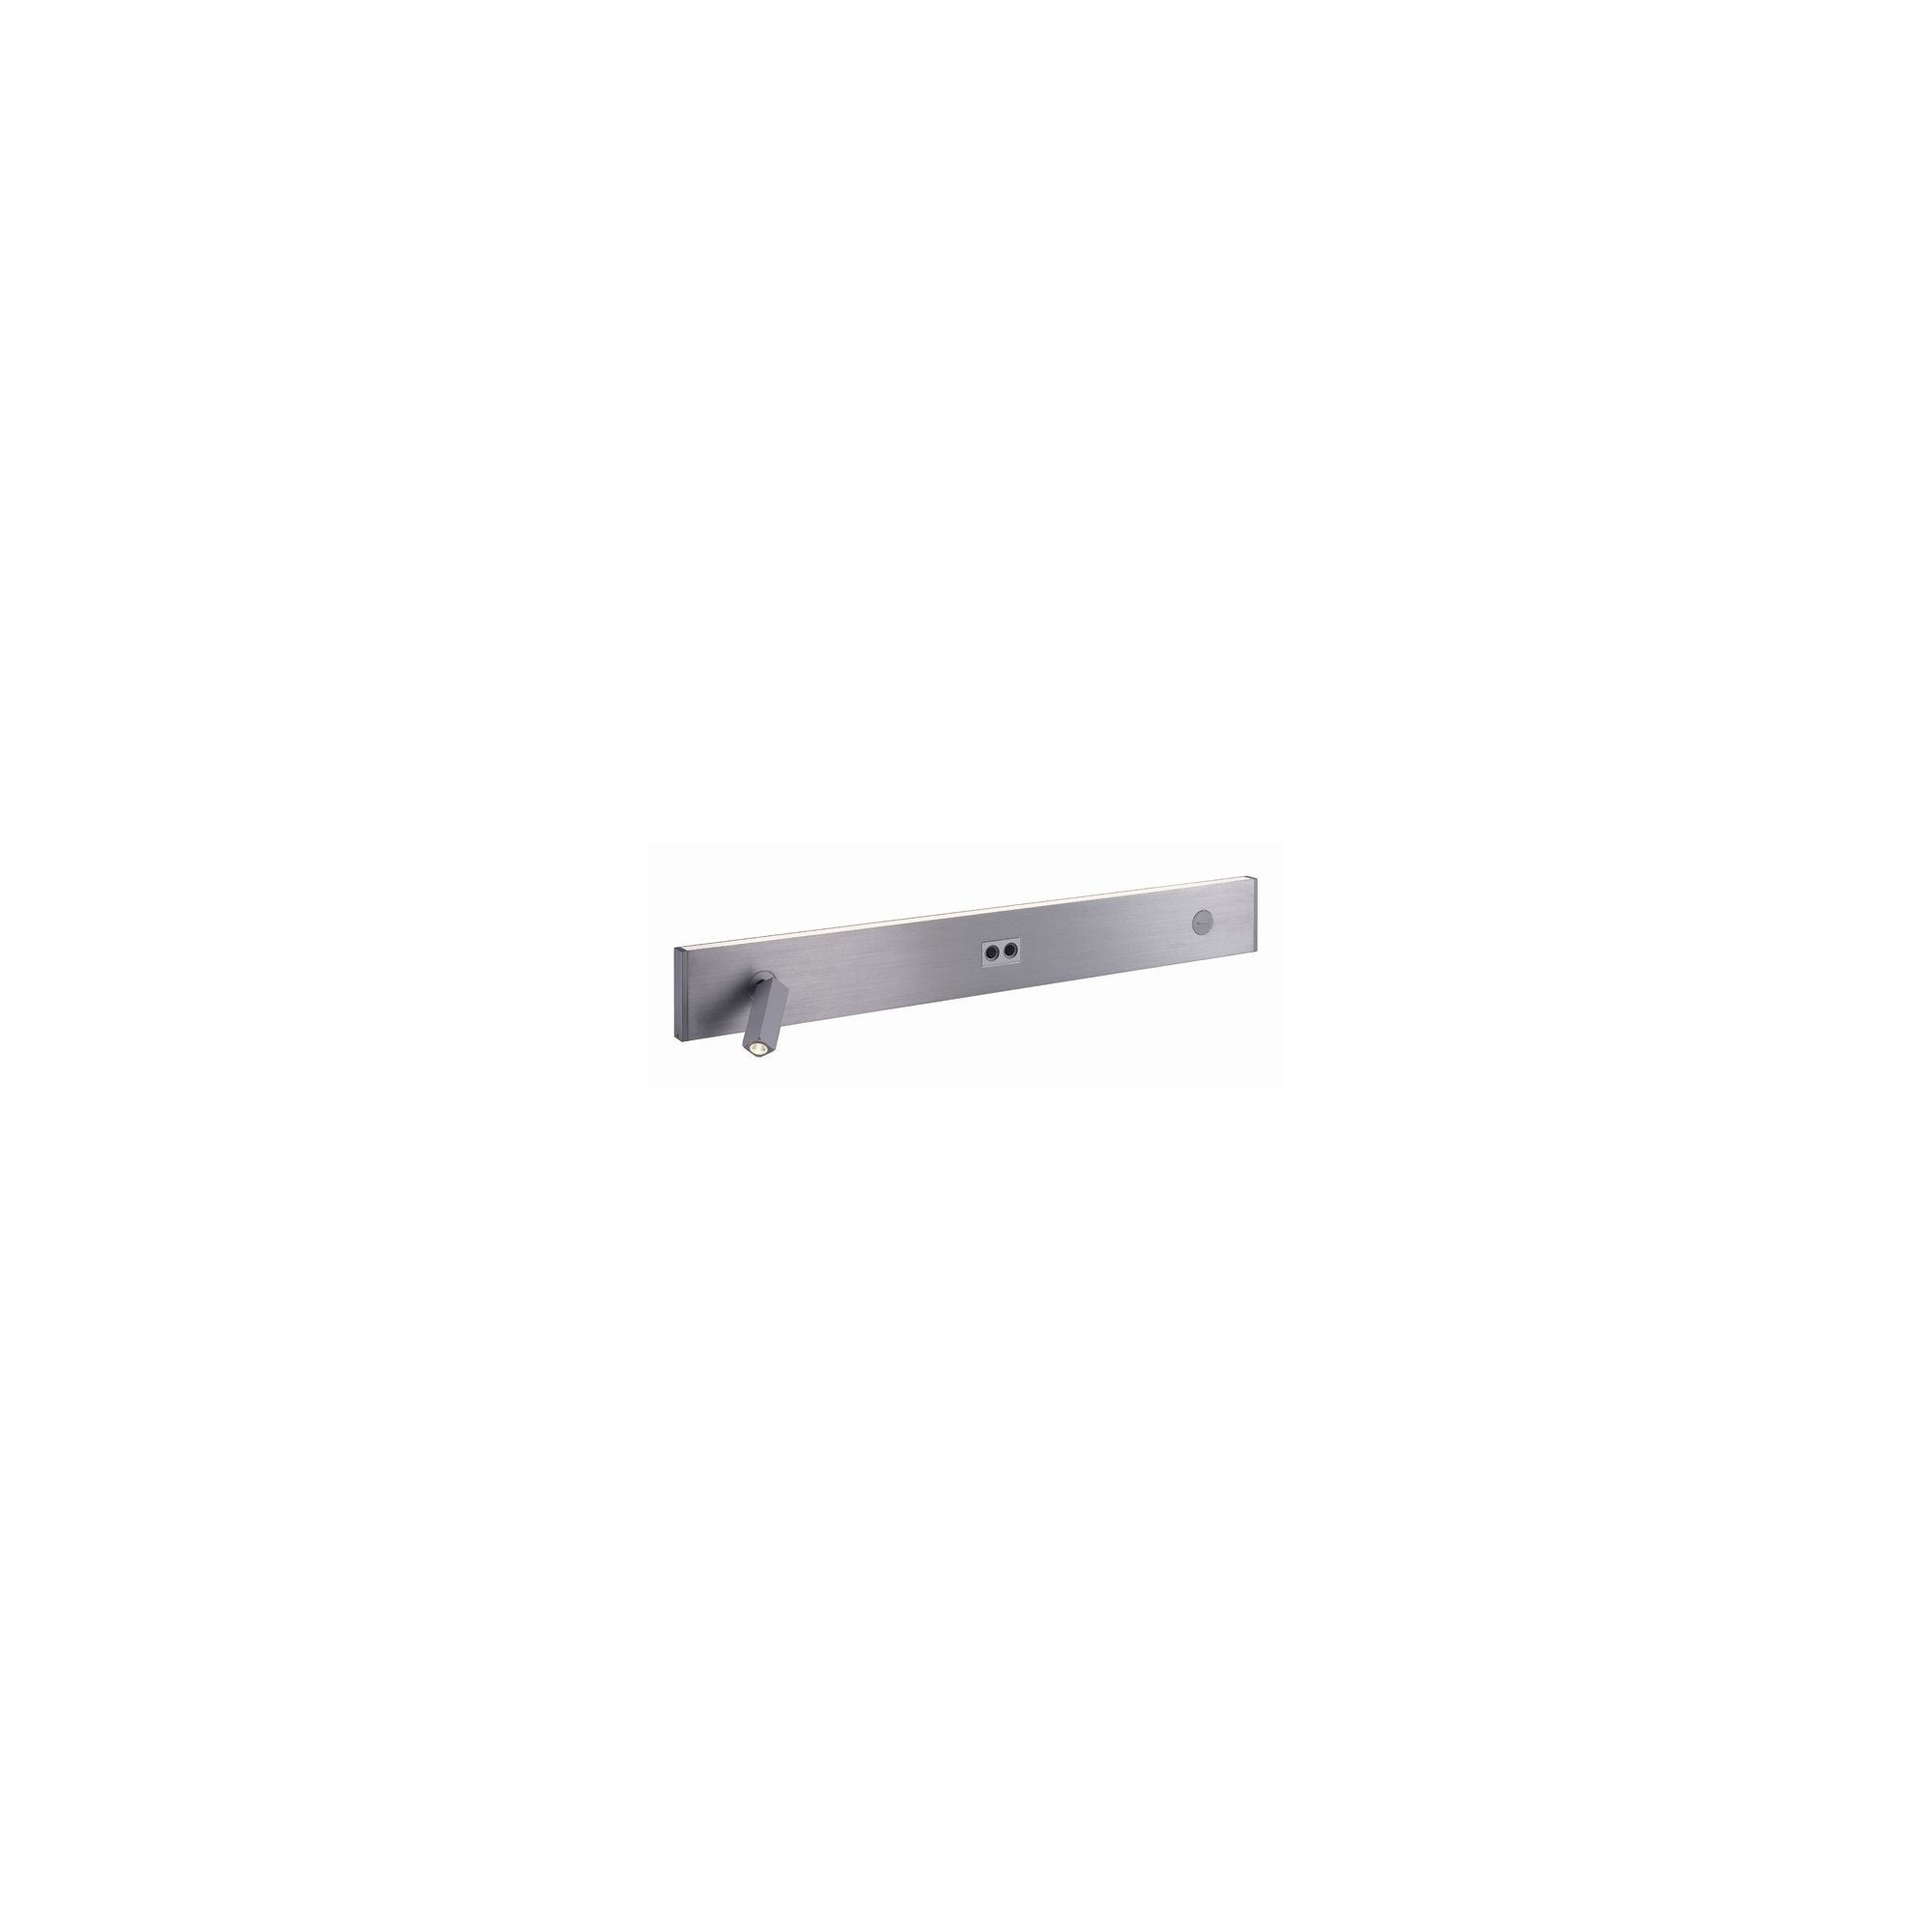 Slv Tidur One Light Wall Lighting In Aluminium Brushed - Warm White